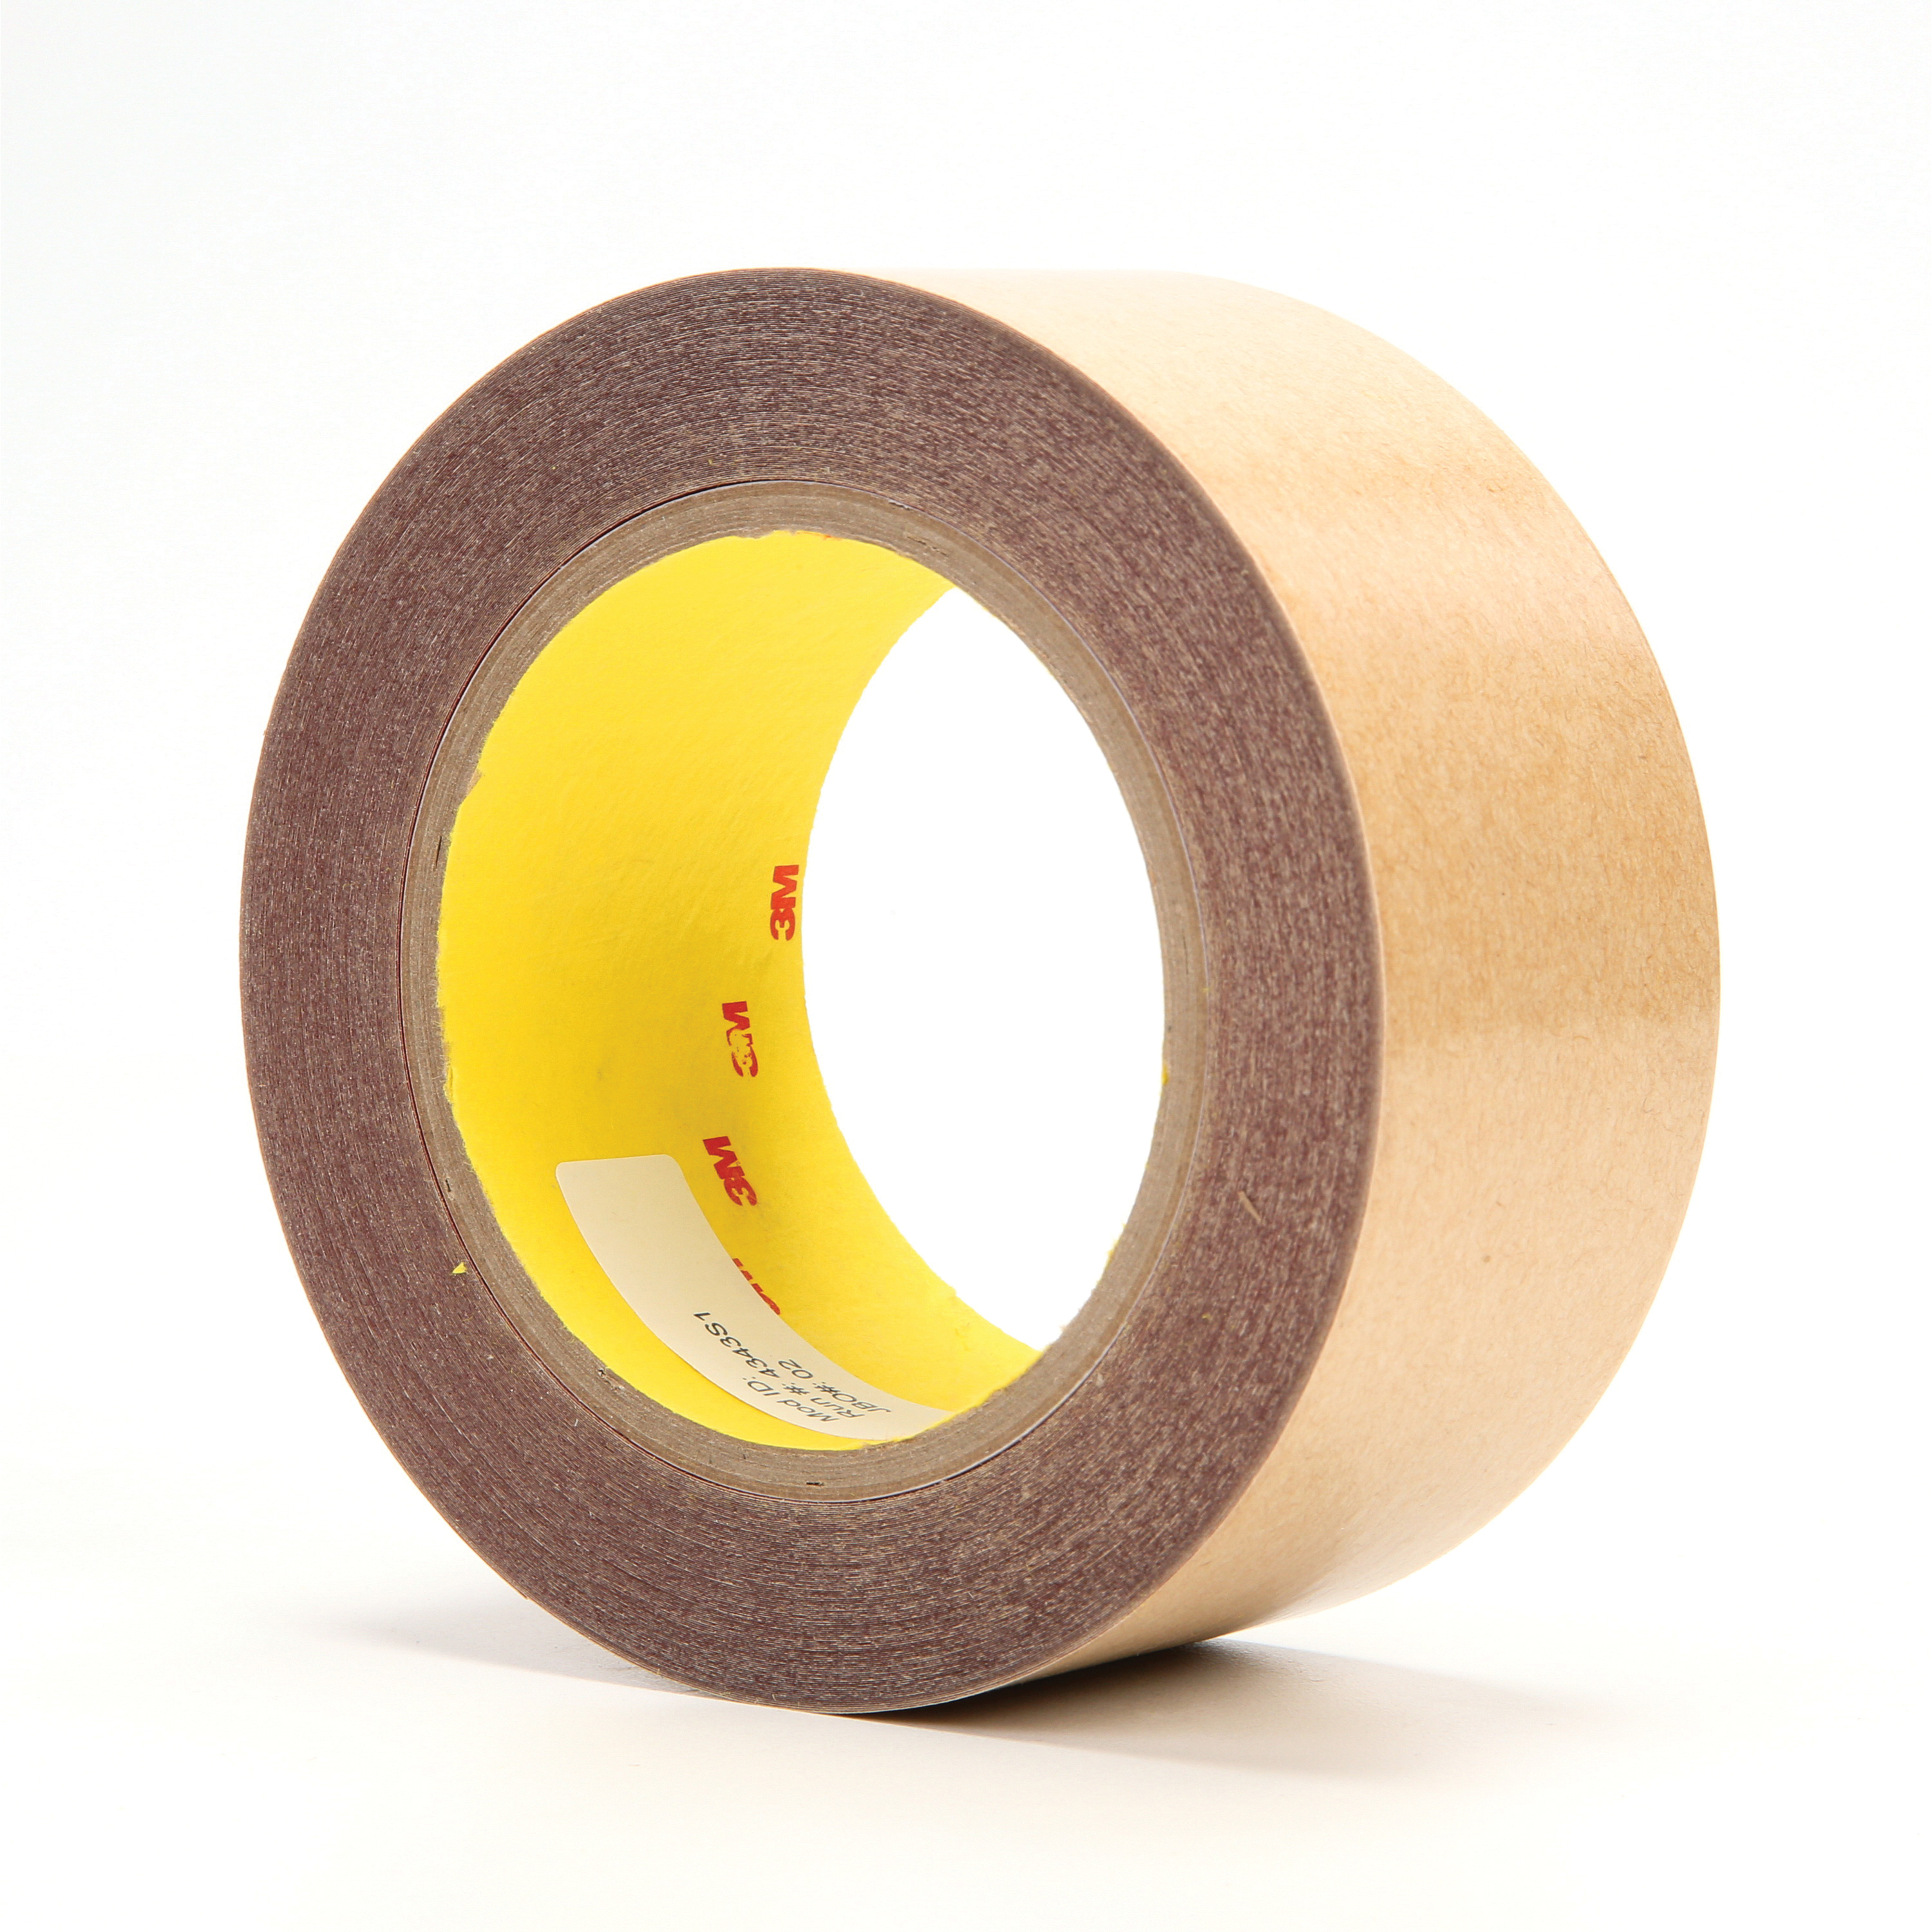 3M™ 021200-16057 Non-Repulpable Double Coated Splicing Tape, 36 yd L x 2 in W, 4 mil THK, 400HT Acrylic Adhesive, Polyester Backing, Red